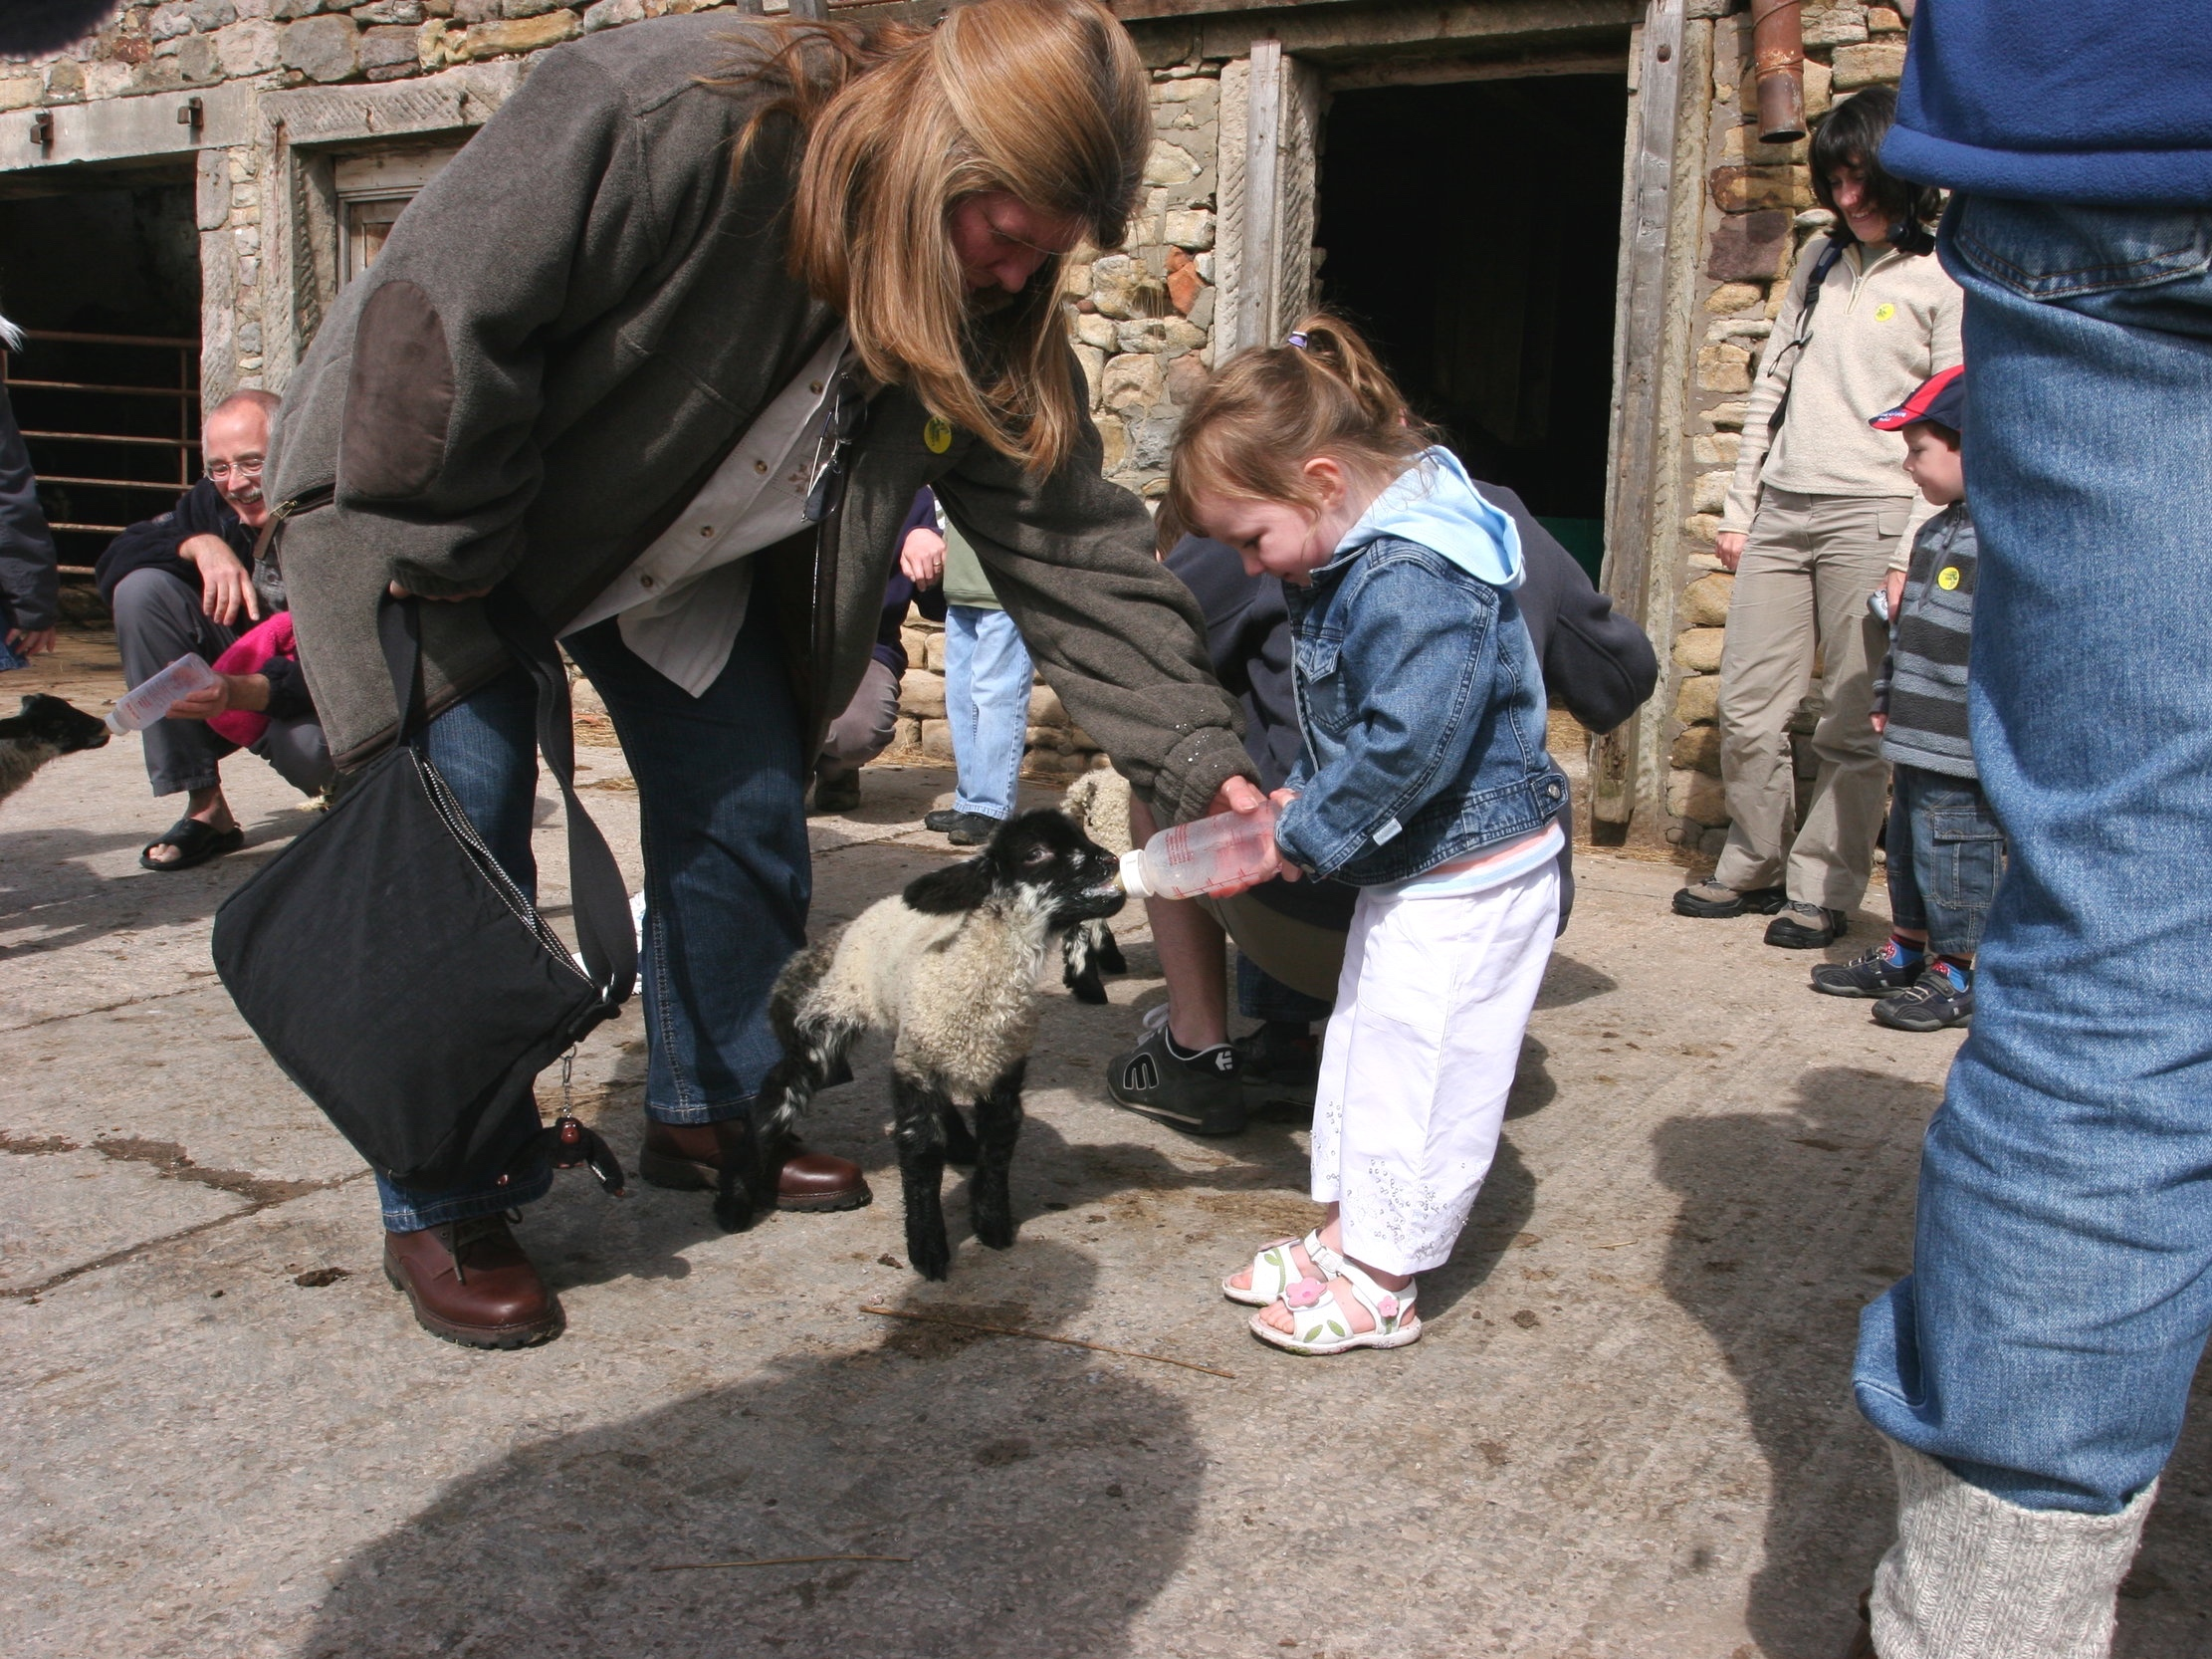 FEED THE ANIMALS - Feed sheep, goats and chickens at 11:30, 14:00 and 16:00 every day.